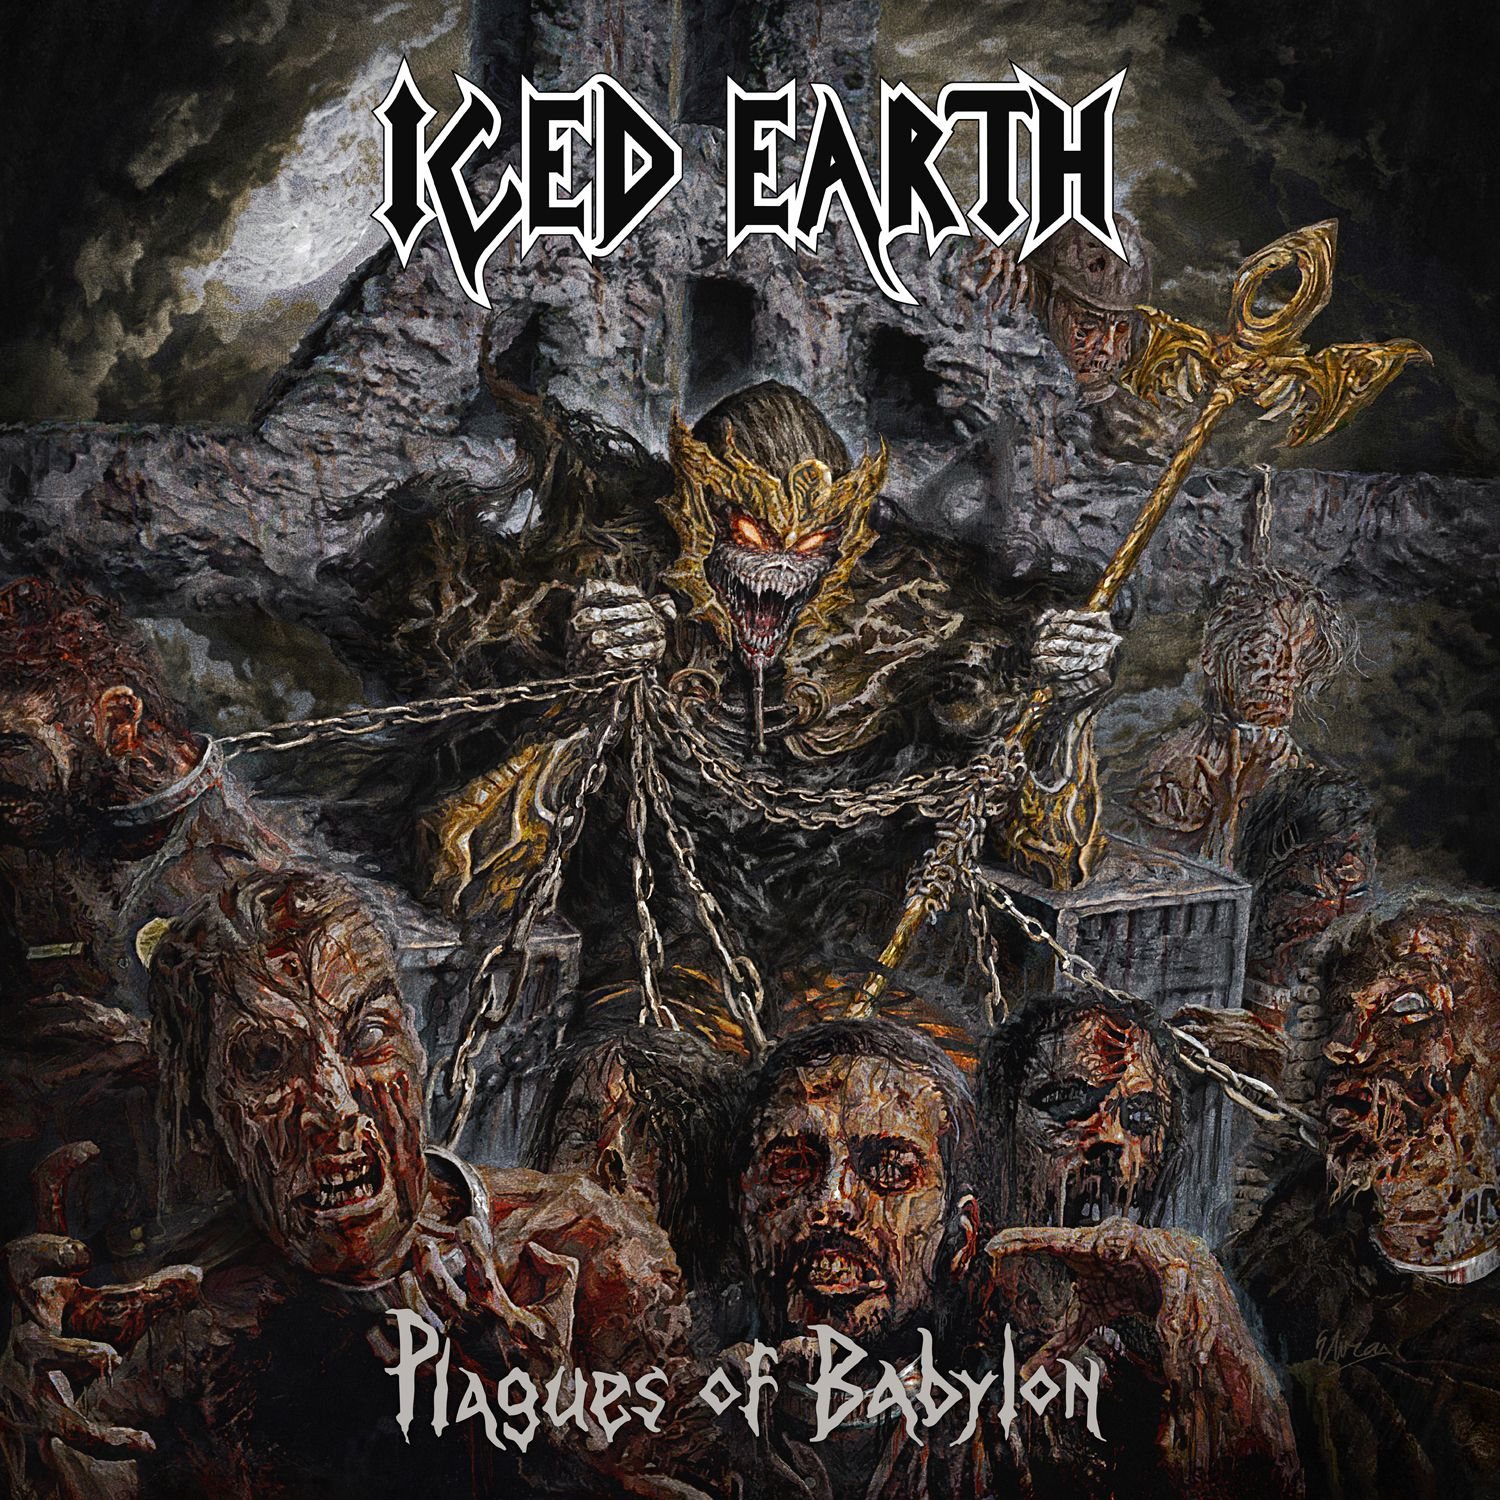 Iced Earth - Plagues Of Babylon album cover